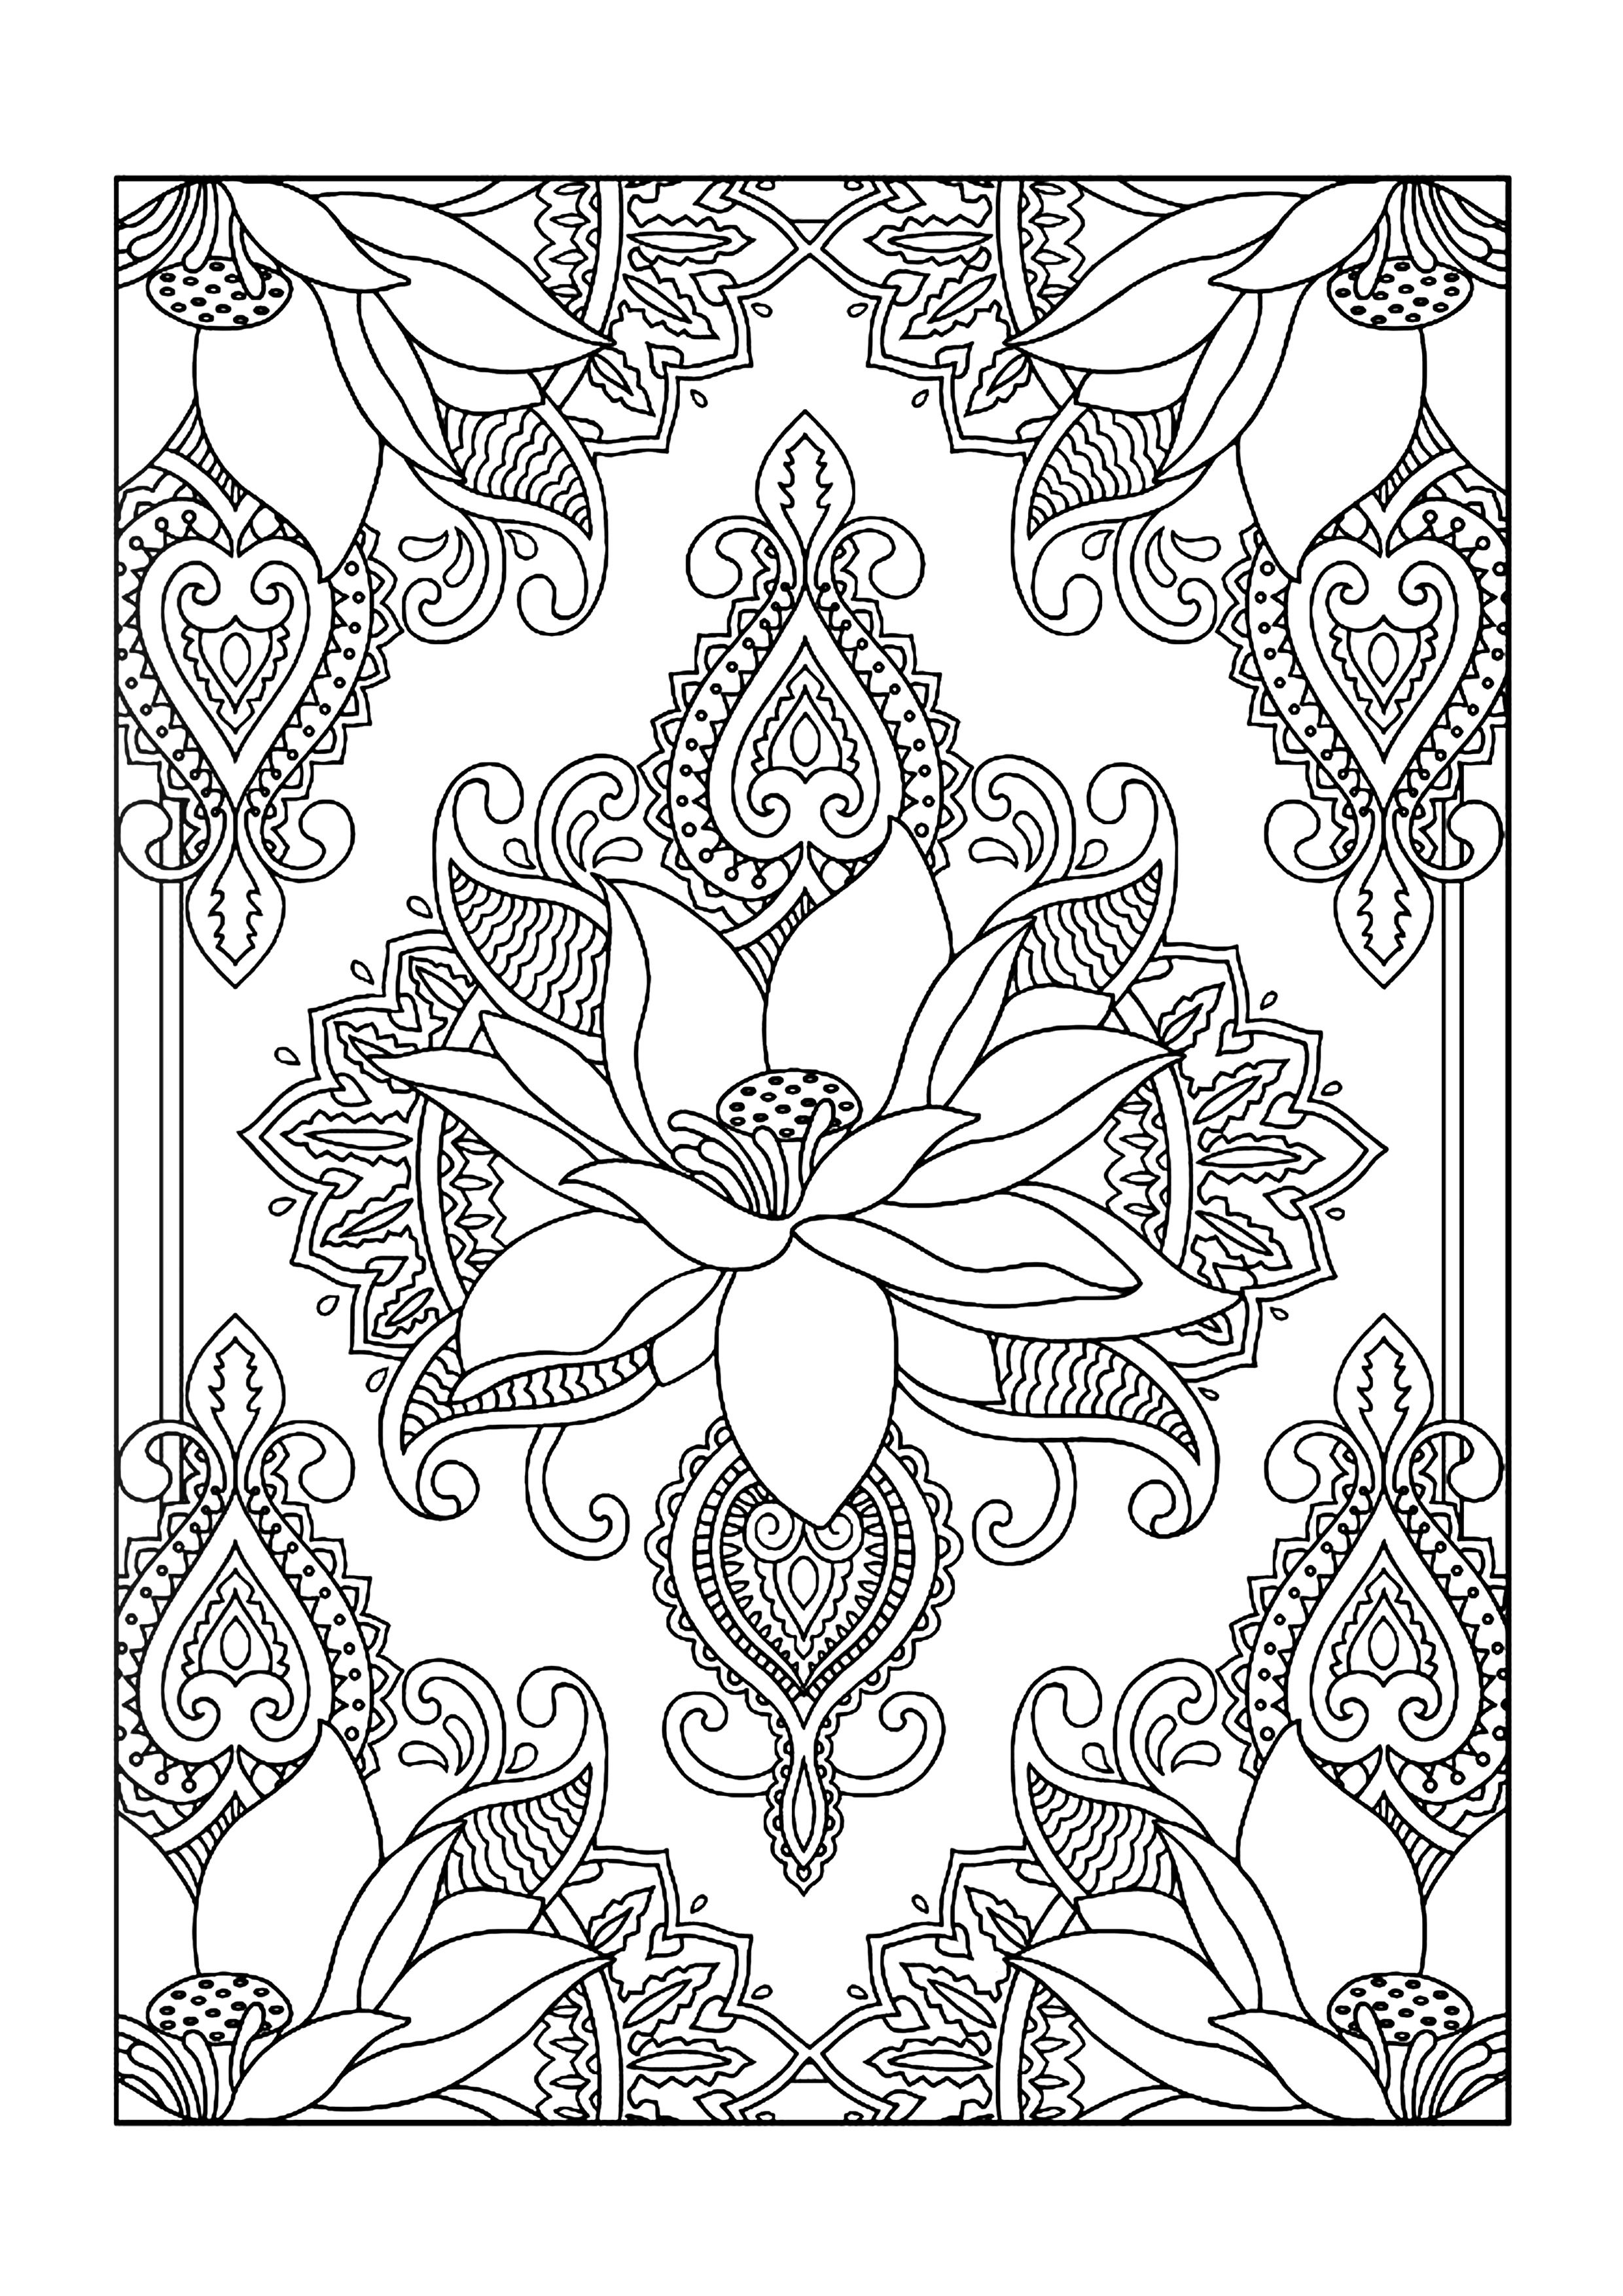 colouring books  free printable a4 size  lotus flower